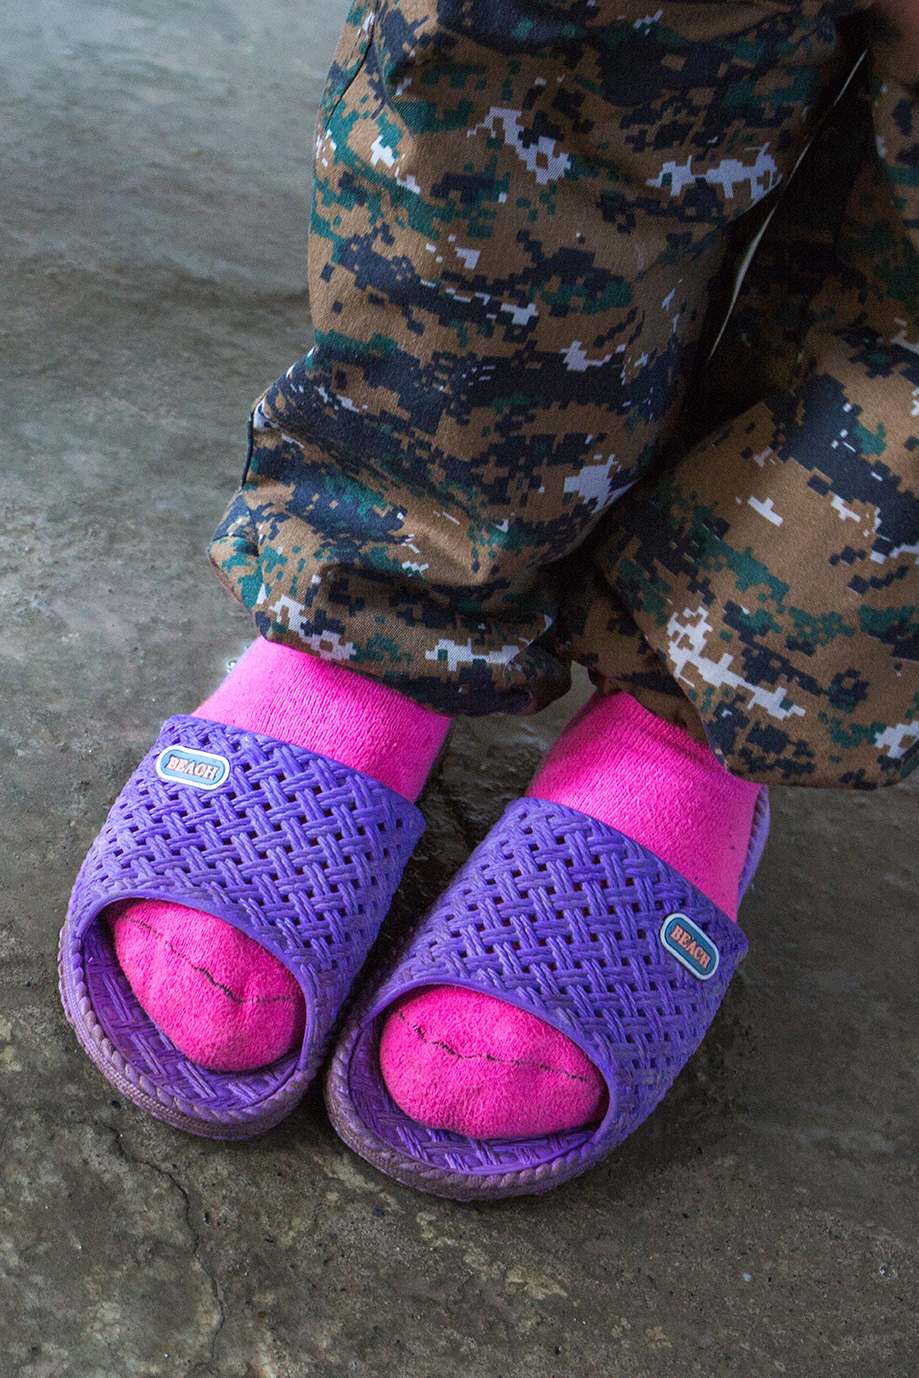 foots female yesidi fighter pink socks camouflage